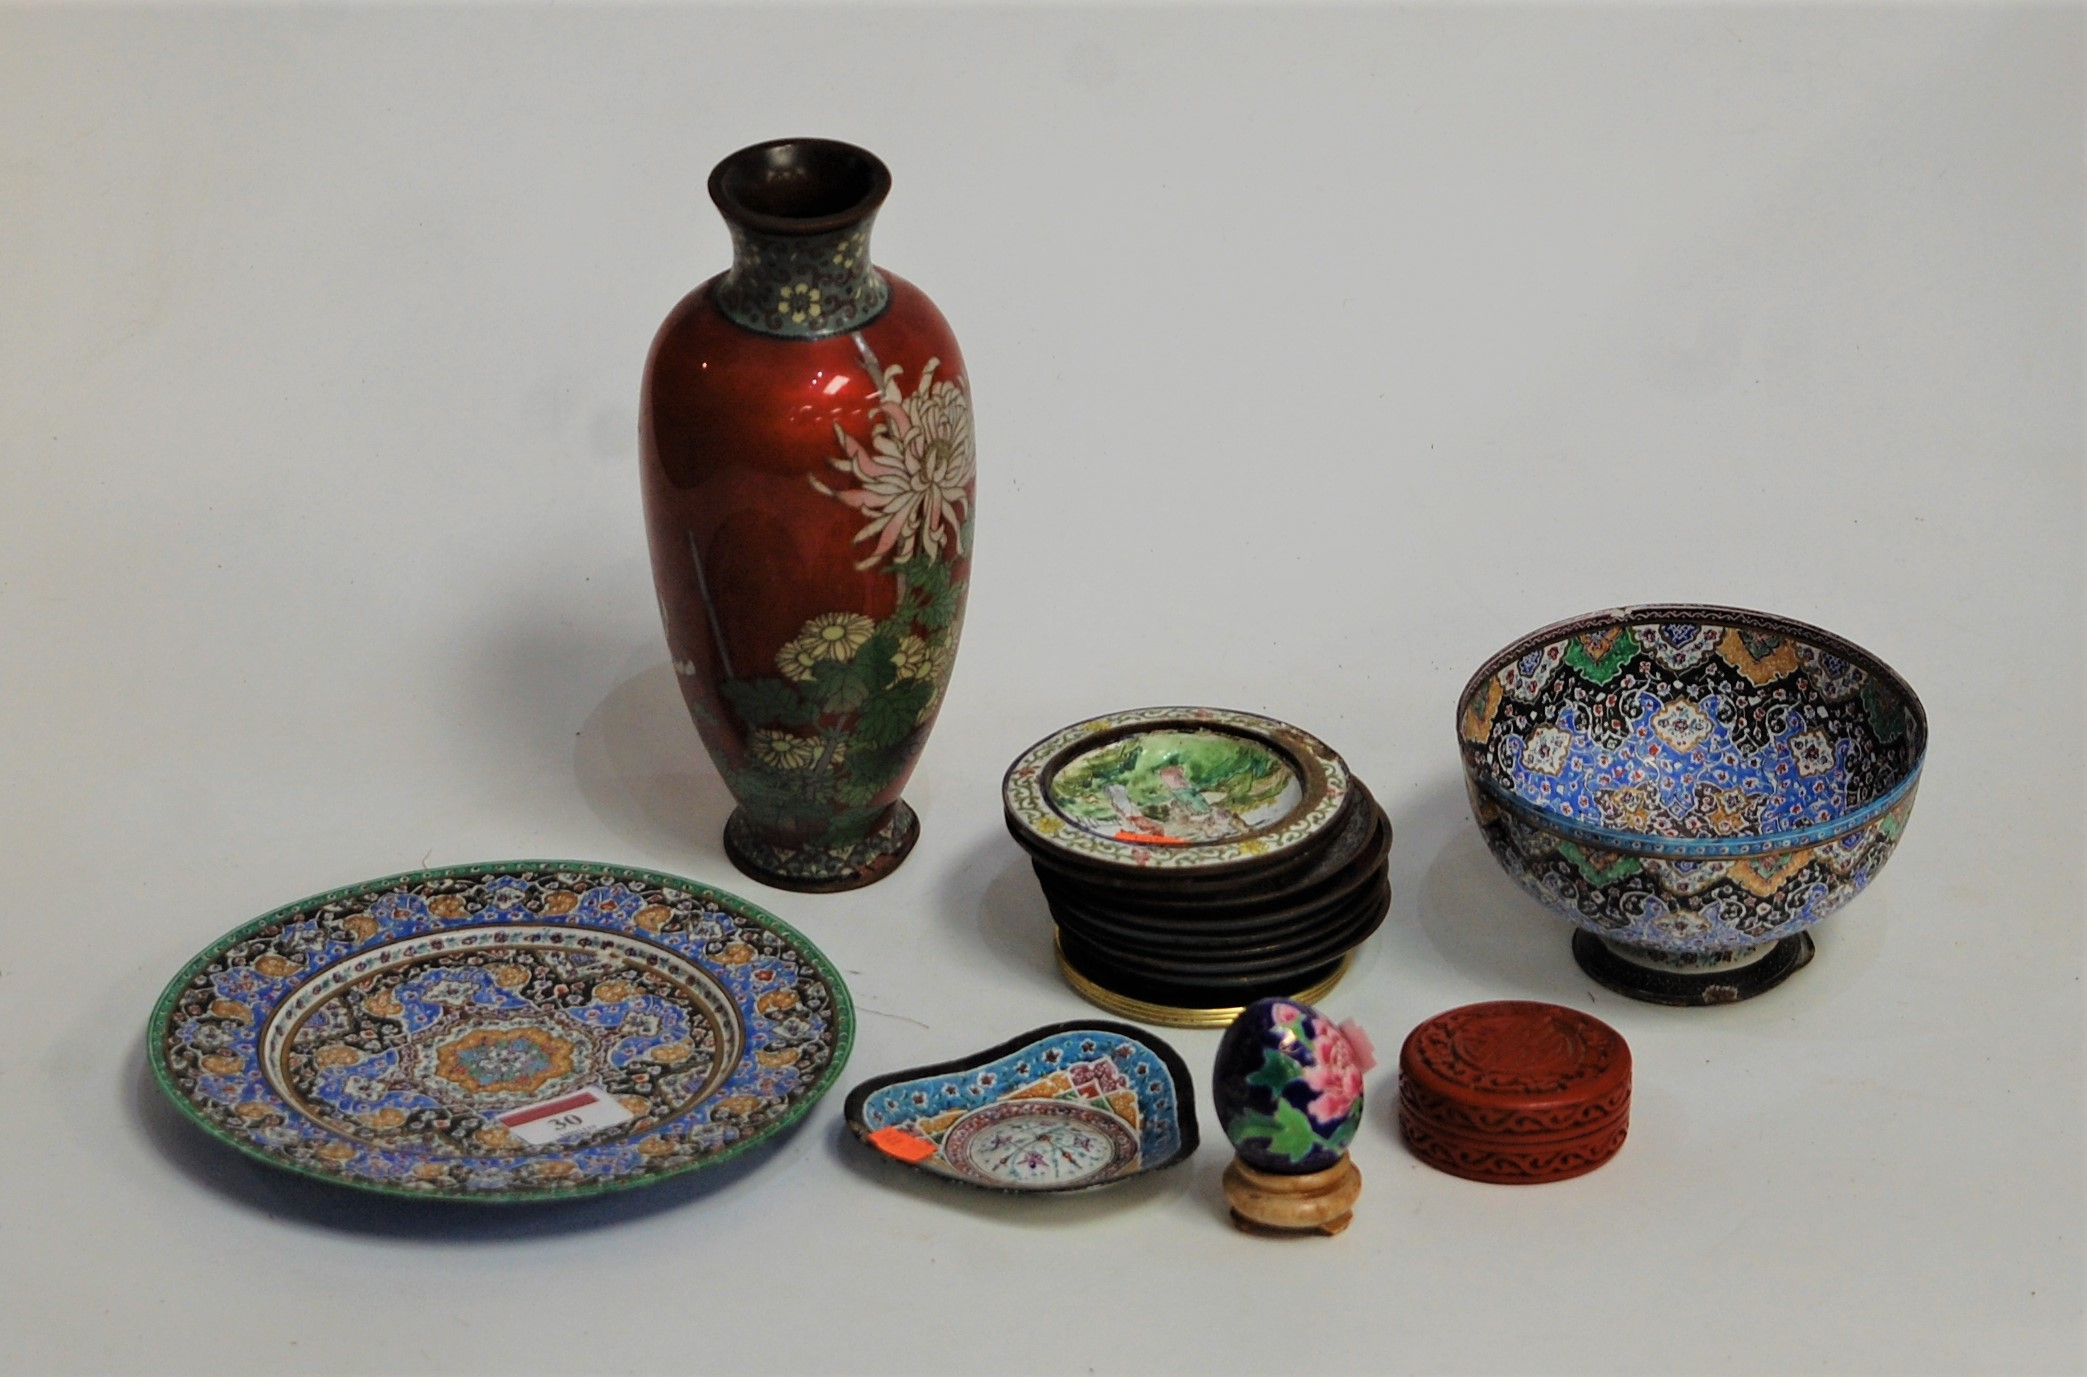 Lot 30 - An early 20th century Japanese cloisonné vase, of baluster form, on a red ground decorated with